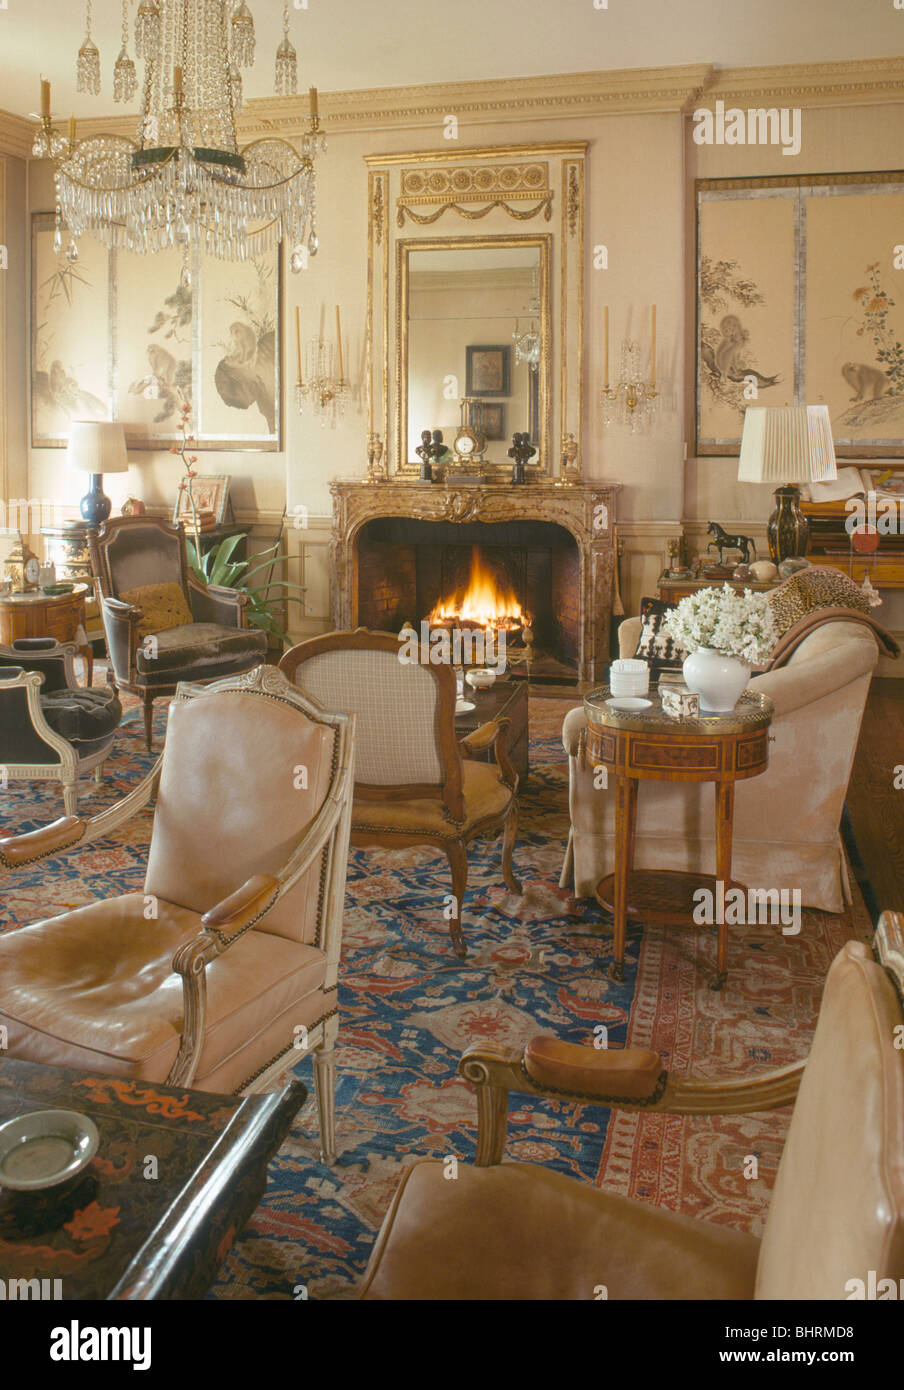 antique furniture and patterned carpet in townhouse drawing room